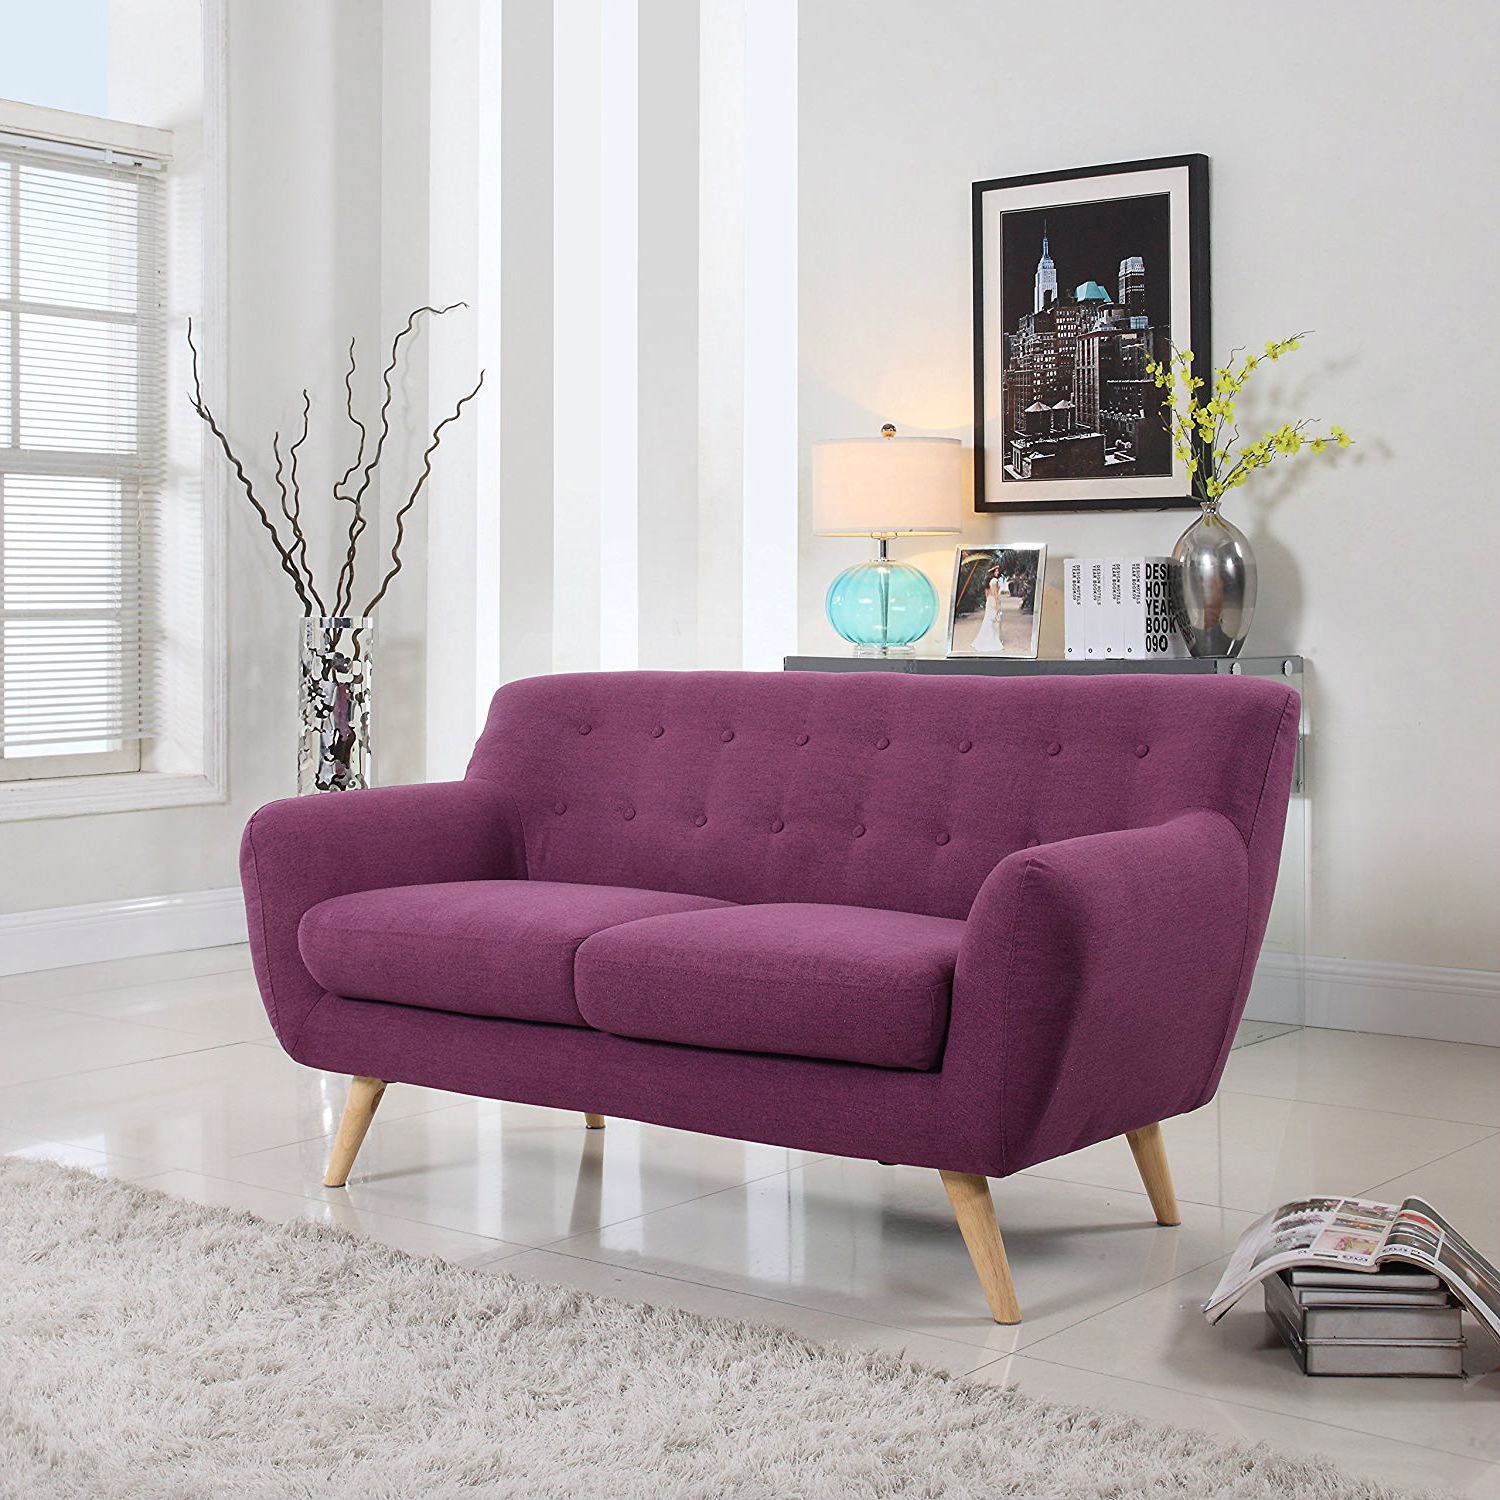 Modern Purple Linen Fabric Upholstered Mid Century Style Regarding Popular Mireille Modern And Contemporary Fabric Upholstered Sectional Sofas (View 9 of 20)